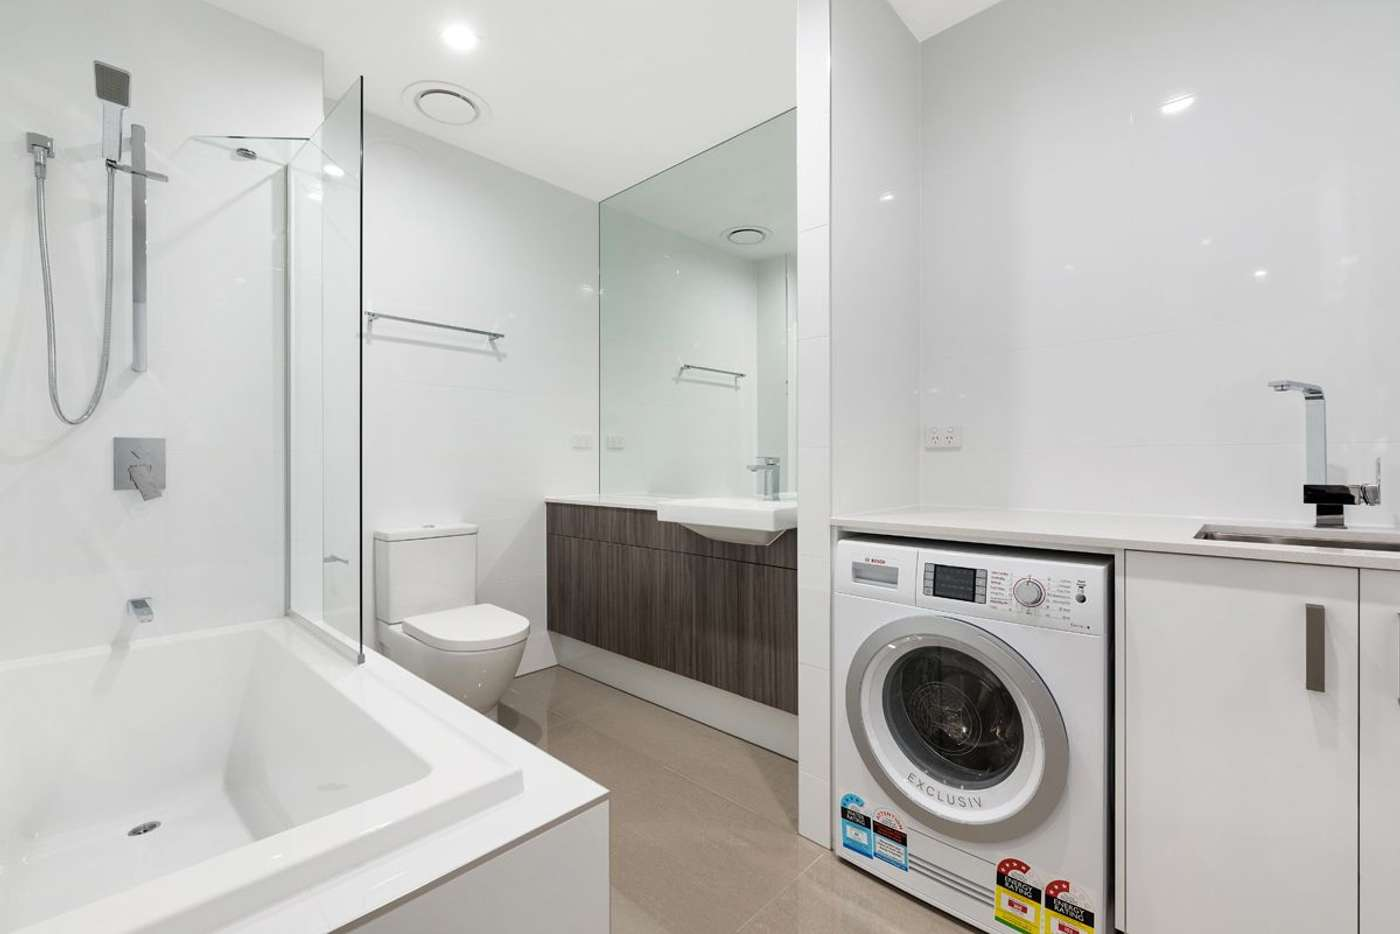 Seventh view of Homely apartment listing, 10/15 Durham, Coorparoo QLD 4151